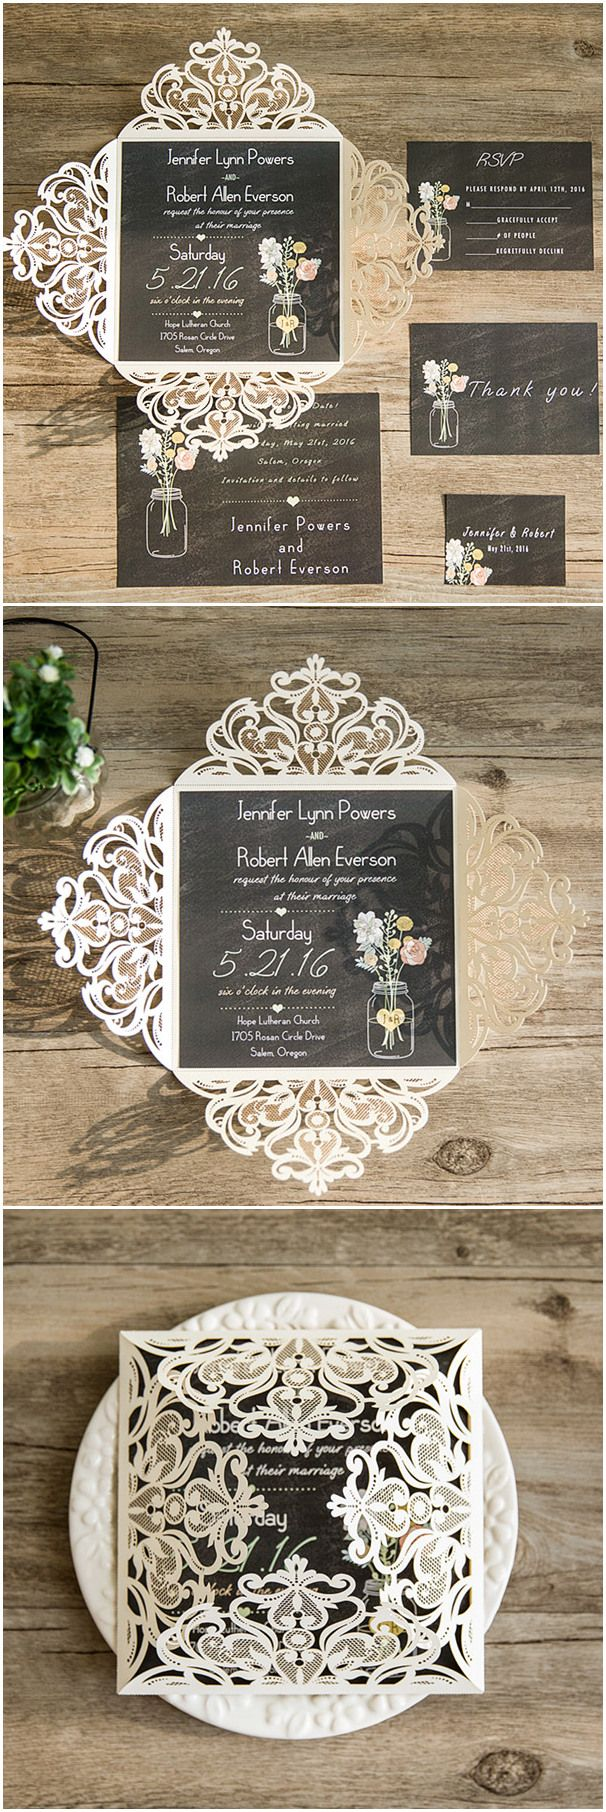 country rustic mason jars wedding invitations with laser cut pocket @elegantwinvites